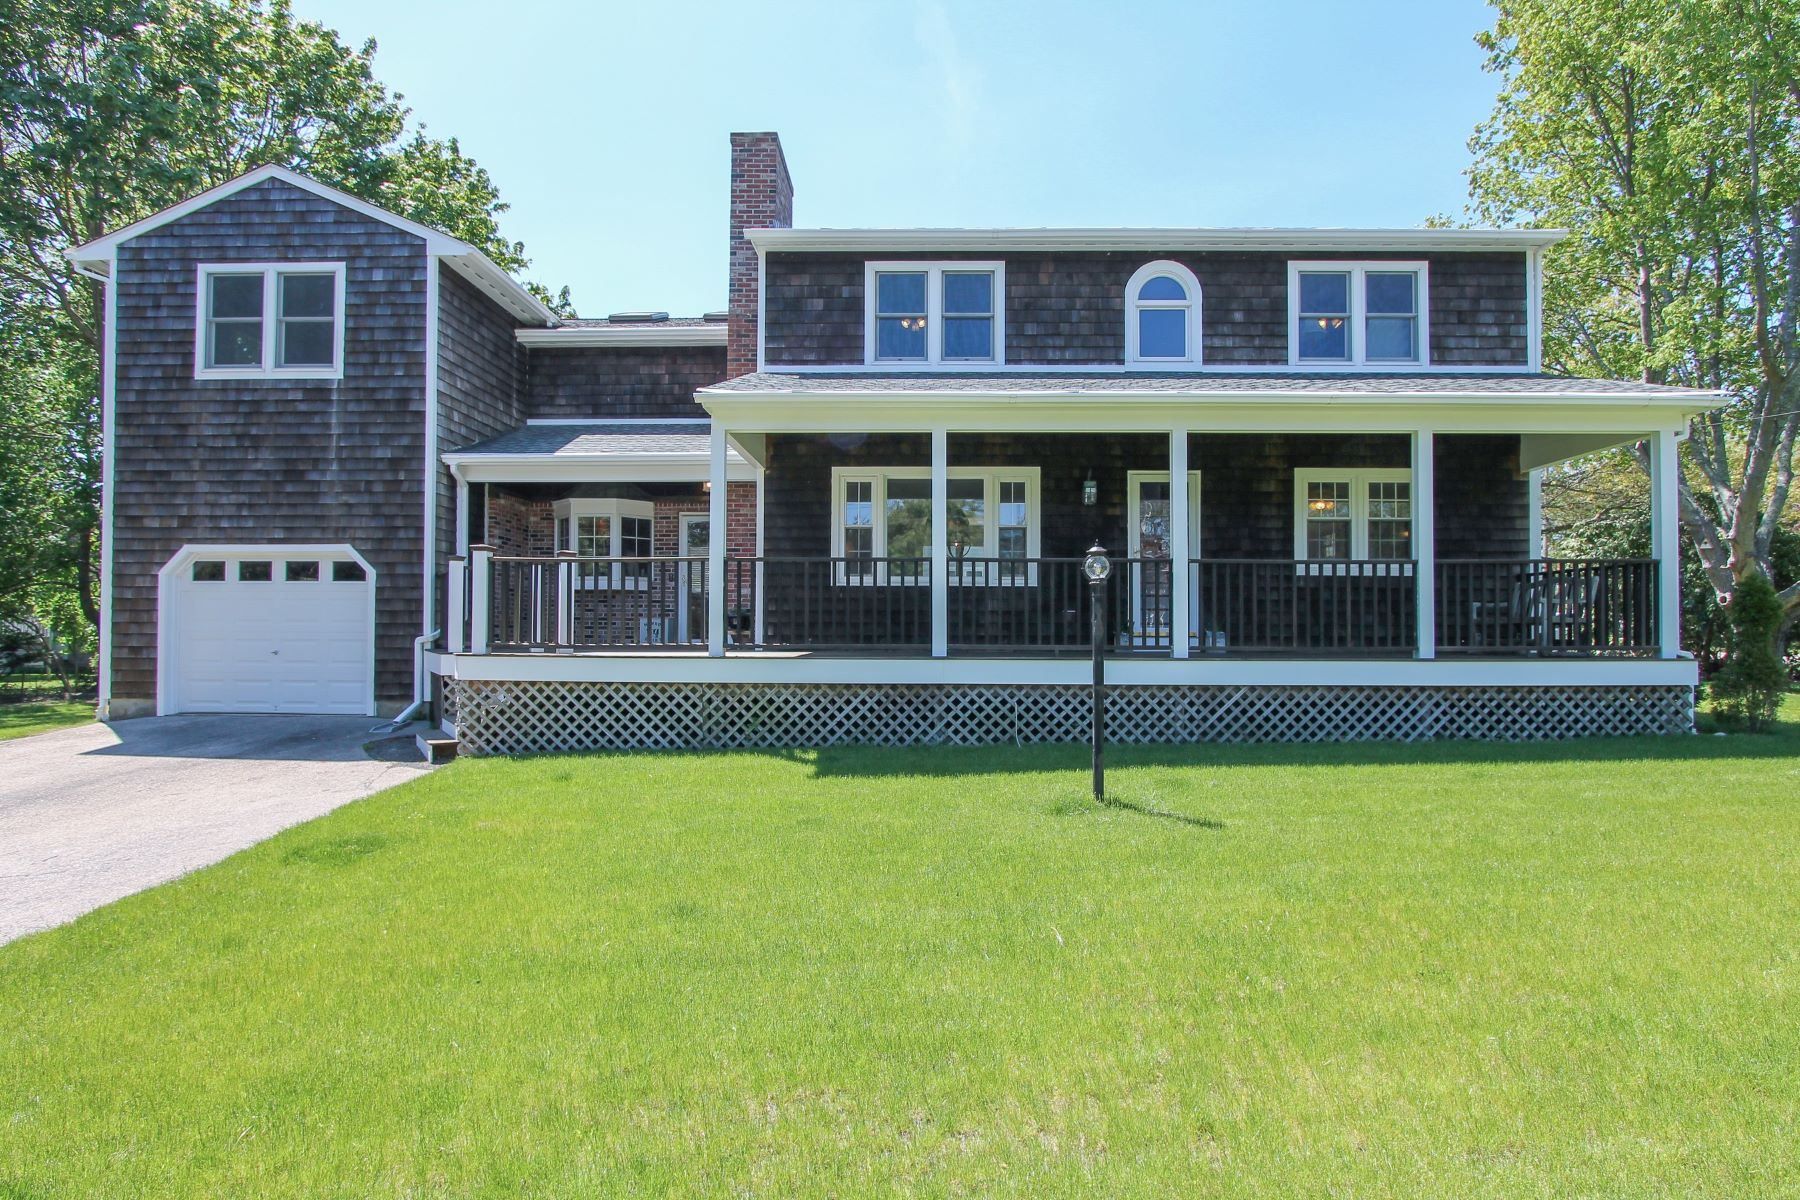 Single Family Homes for Sale at Jamestown Shores Home 433 Beacon Avenue Jamestown, Rhode Island 02835 United States